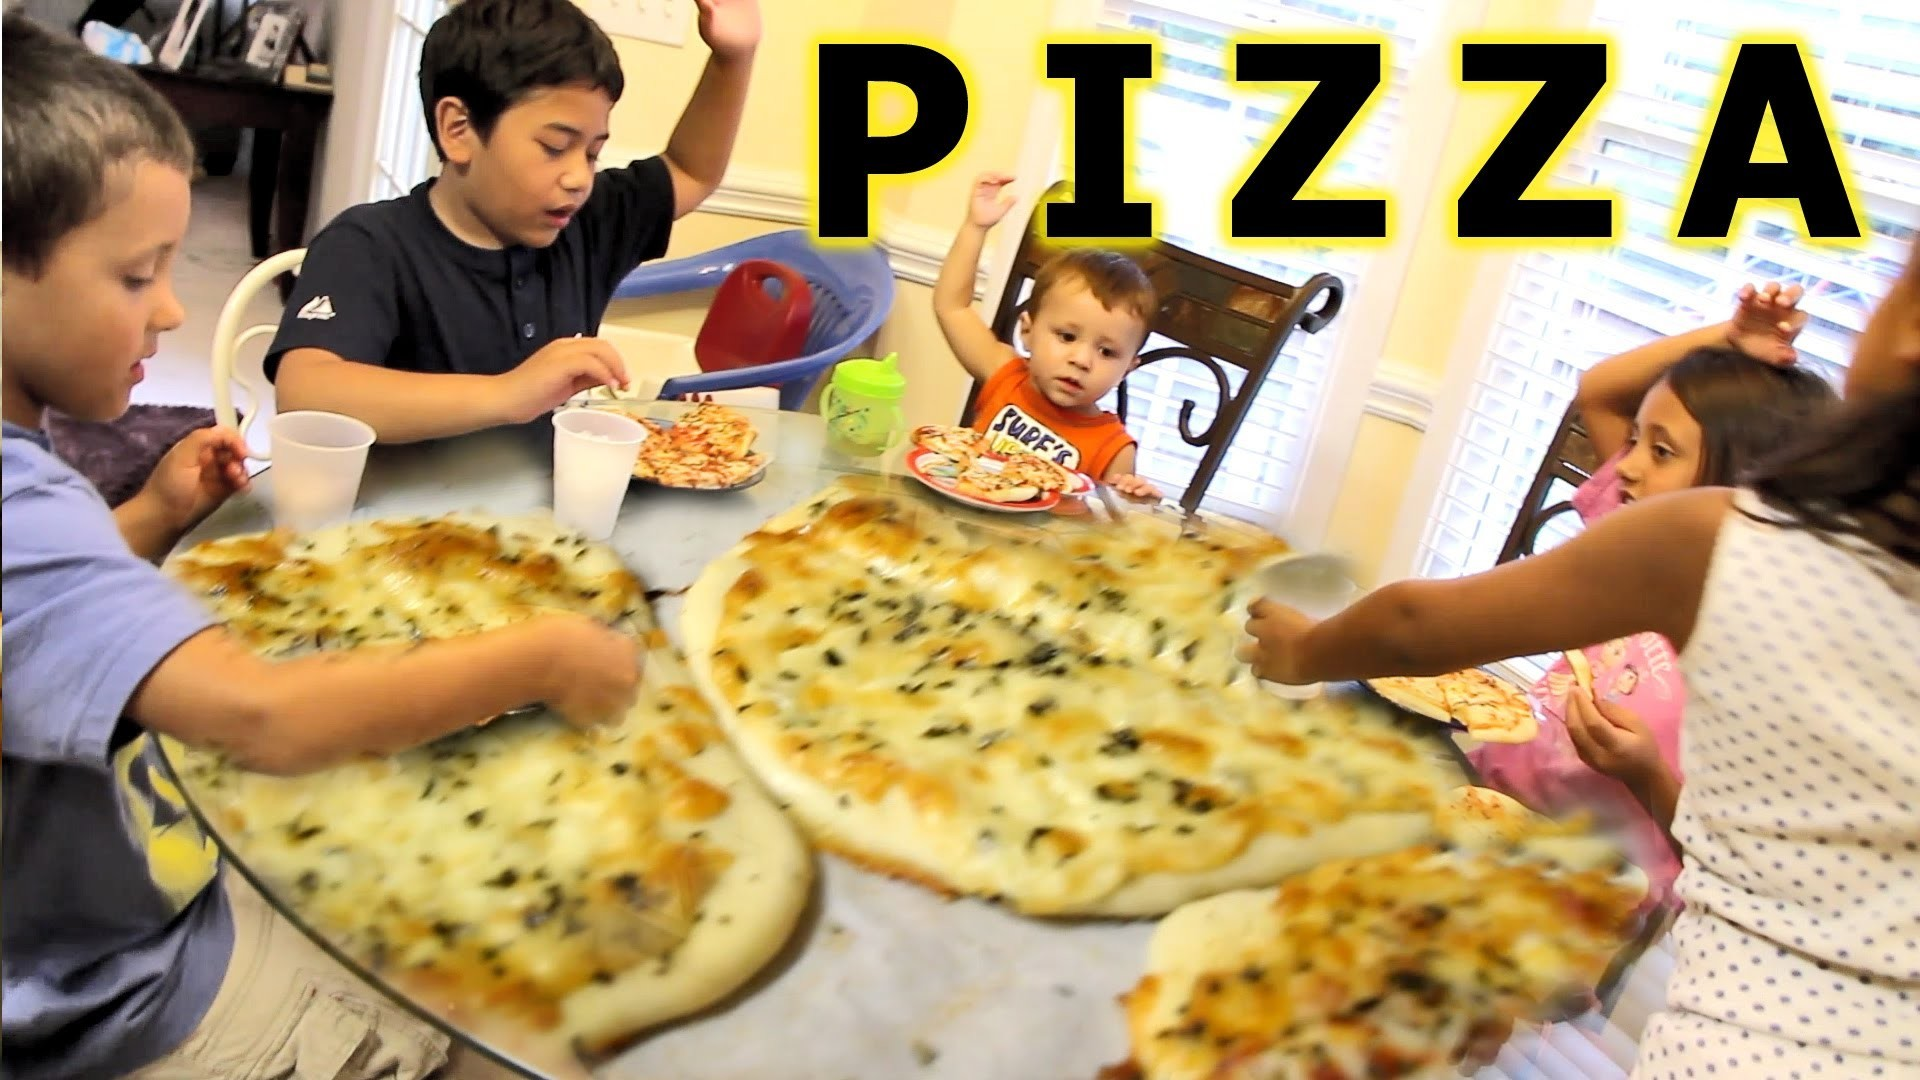 Family Pizza Night (an average day in our silly house)